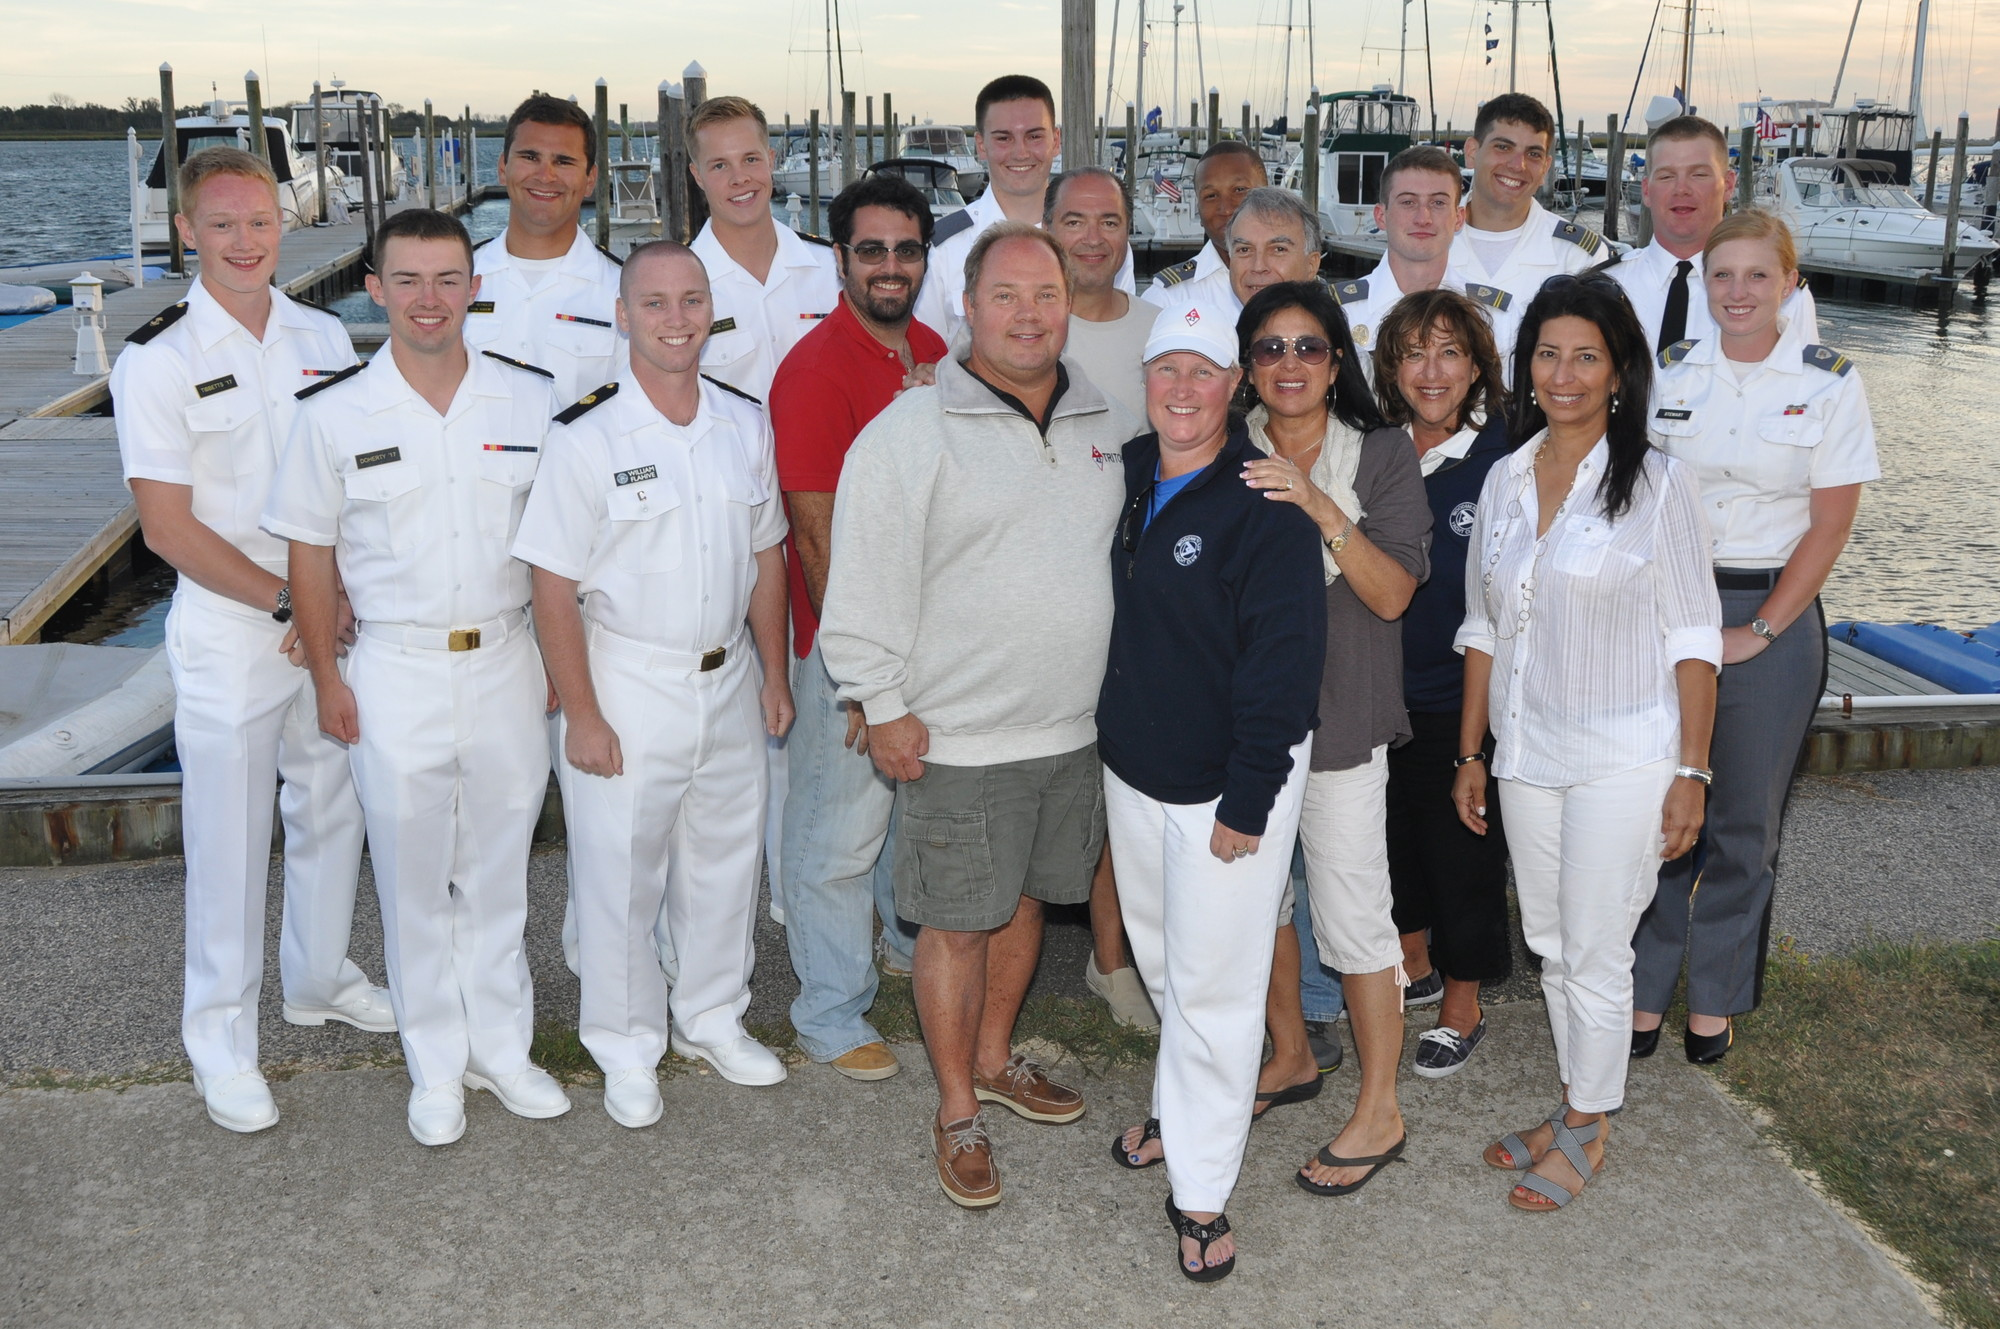 The annual Spirit Rider Regatta Naval Academy students, left, Woodmere Bay Yacht Club members and students from the military academy at West Point, right.